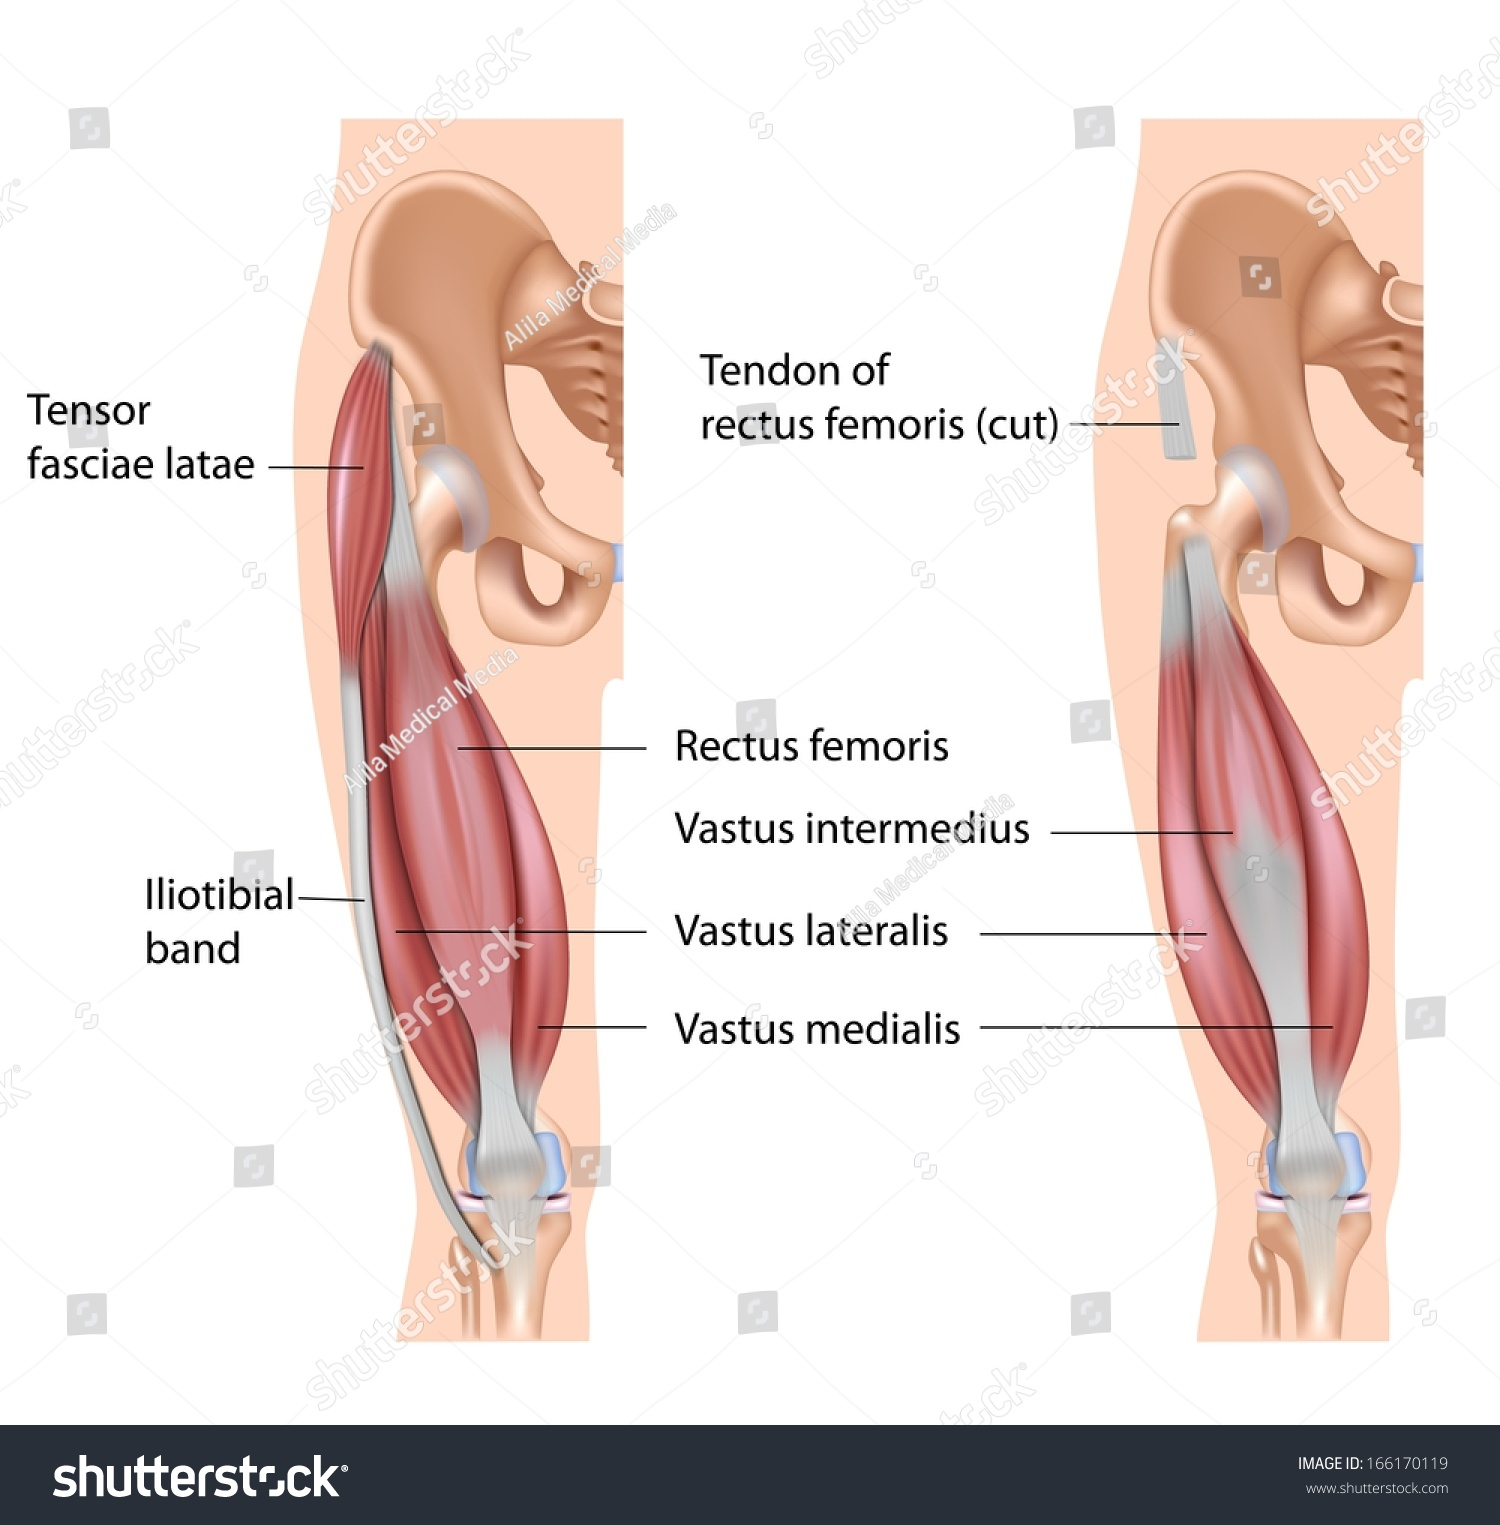 Quadriceps Muscle Labeled Stock Illustration 166170119 - Shutterstock